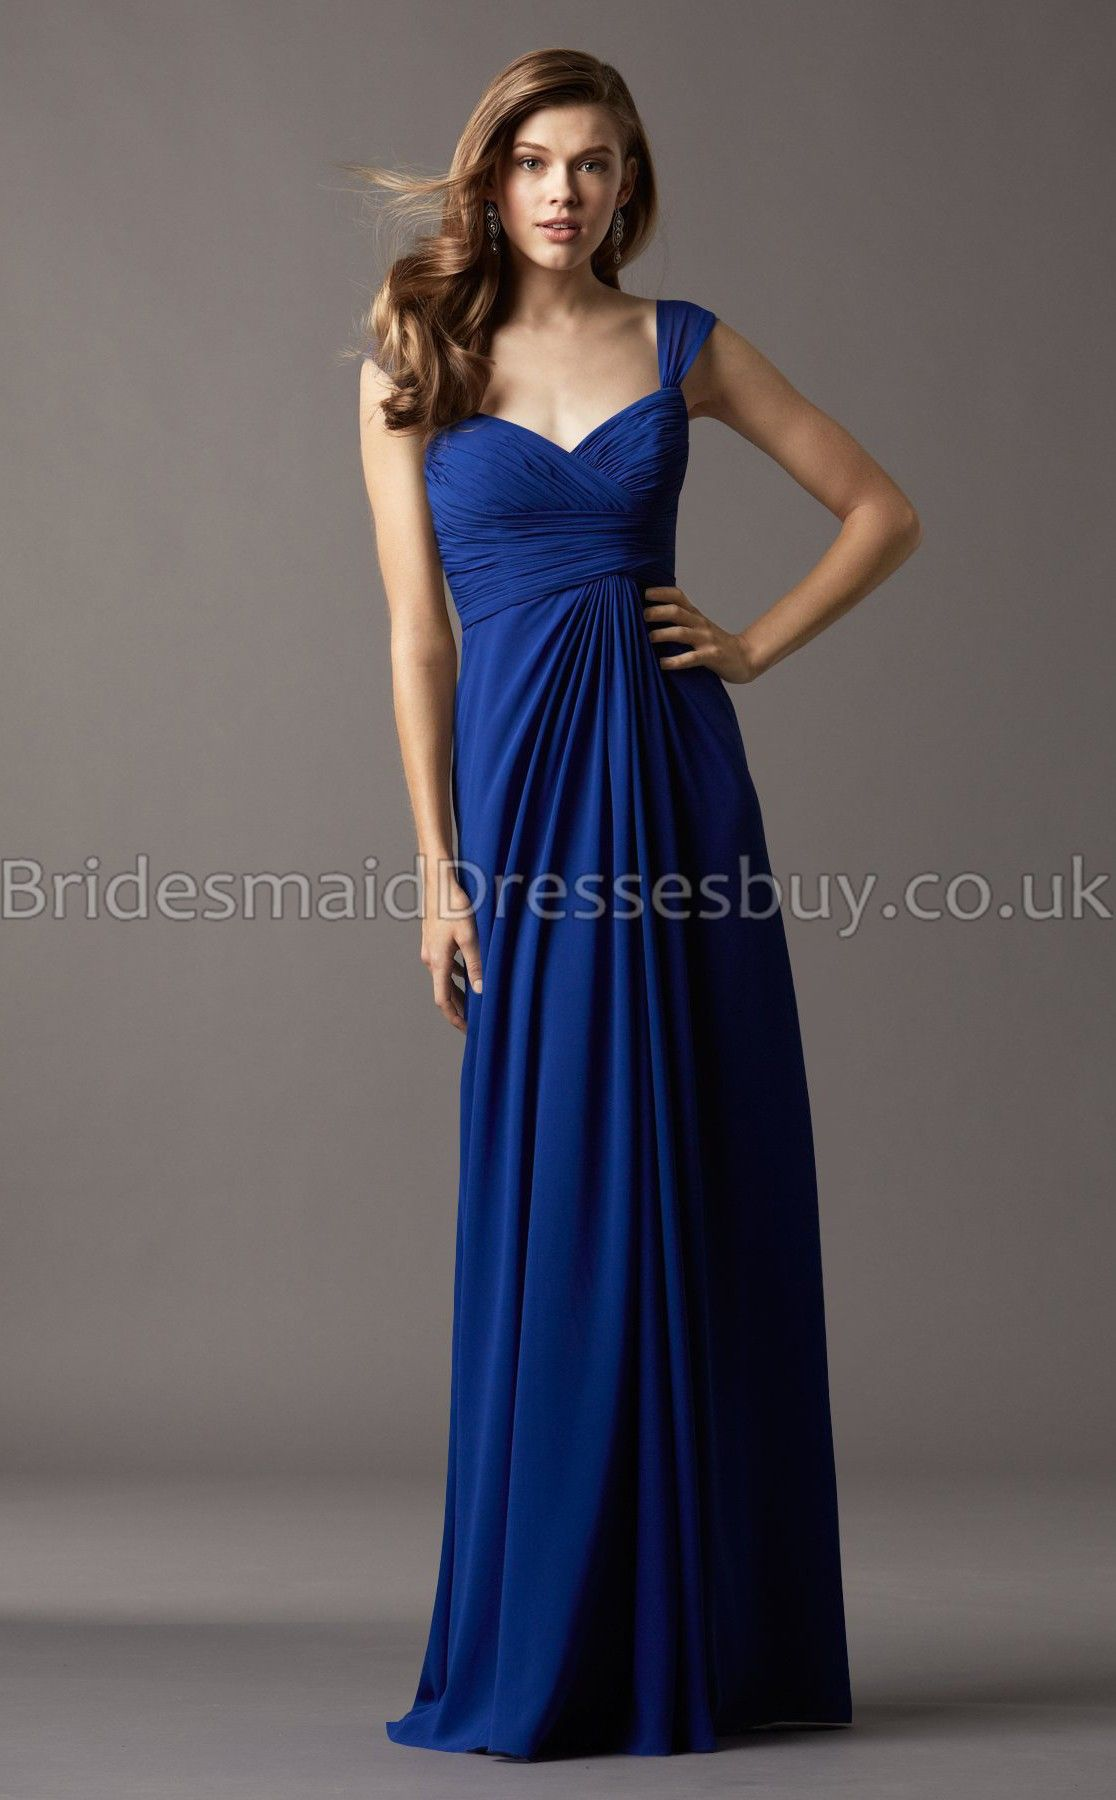 Bridesmaid dresses in royal blue top 50 royal blue bridesmaid a line v neckstraps royal blue chiffon long bridesmaid dressesukbd03 ombrellifo Choice Image